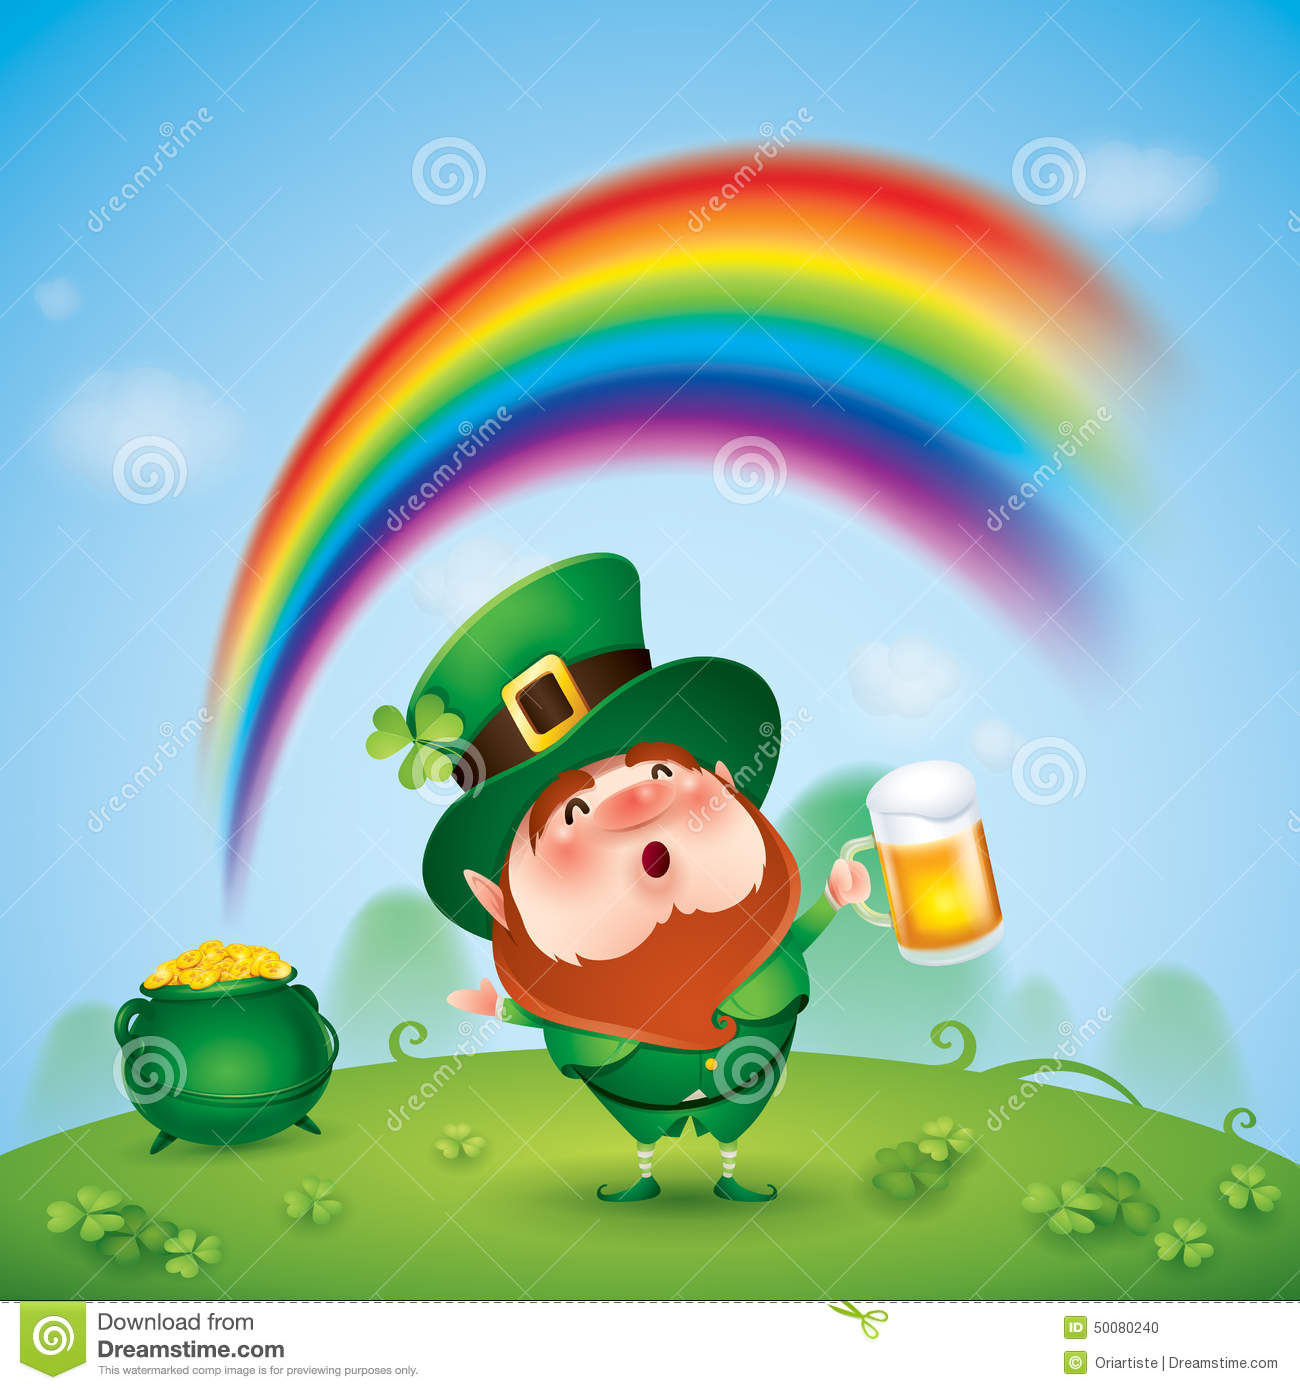 Leprechaun With Pot Of Gold At The End Of Rainbow Stock Vector - Image ...